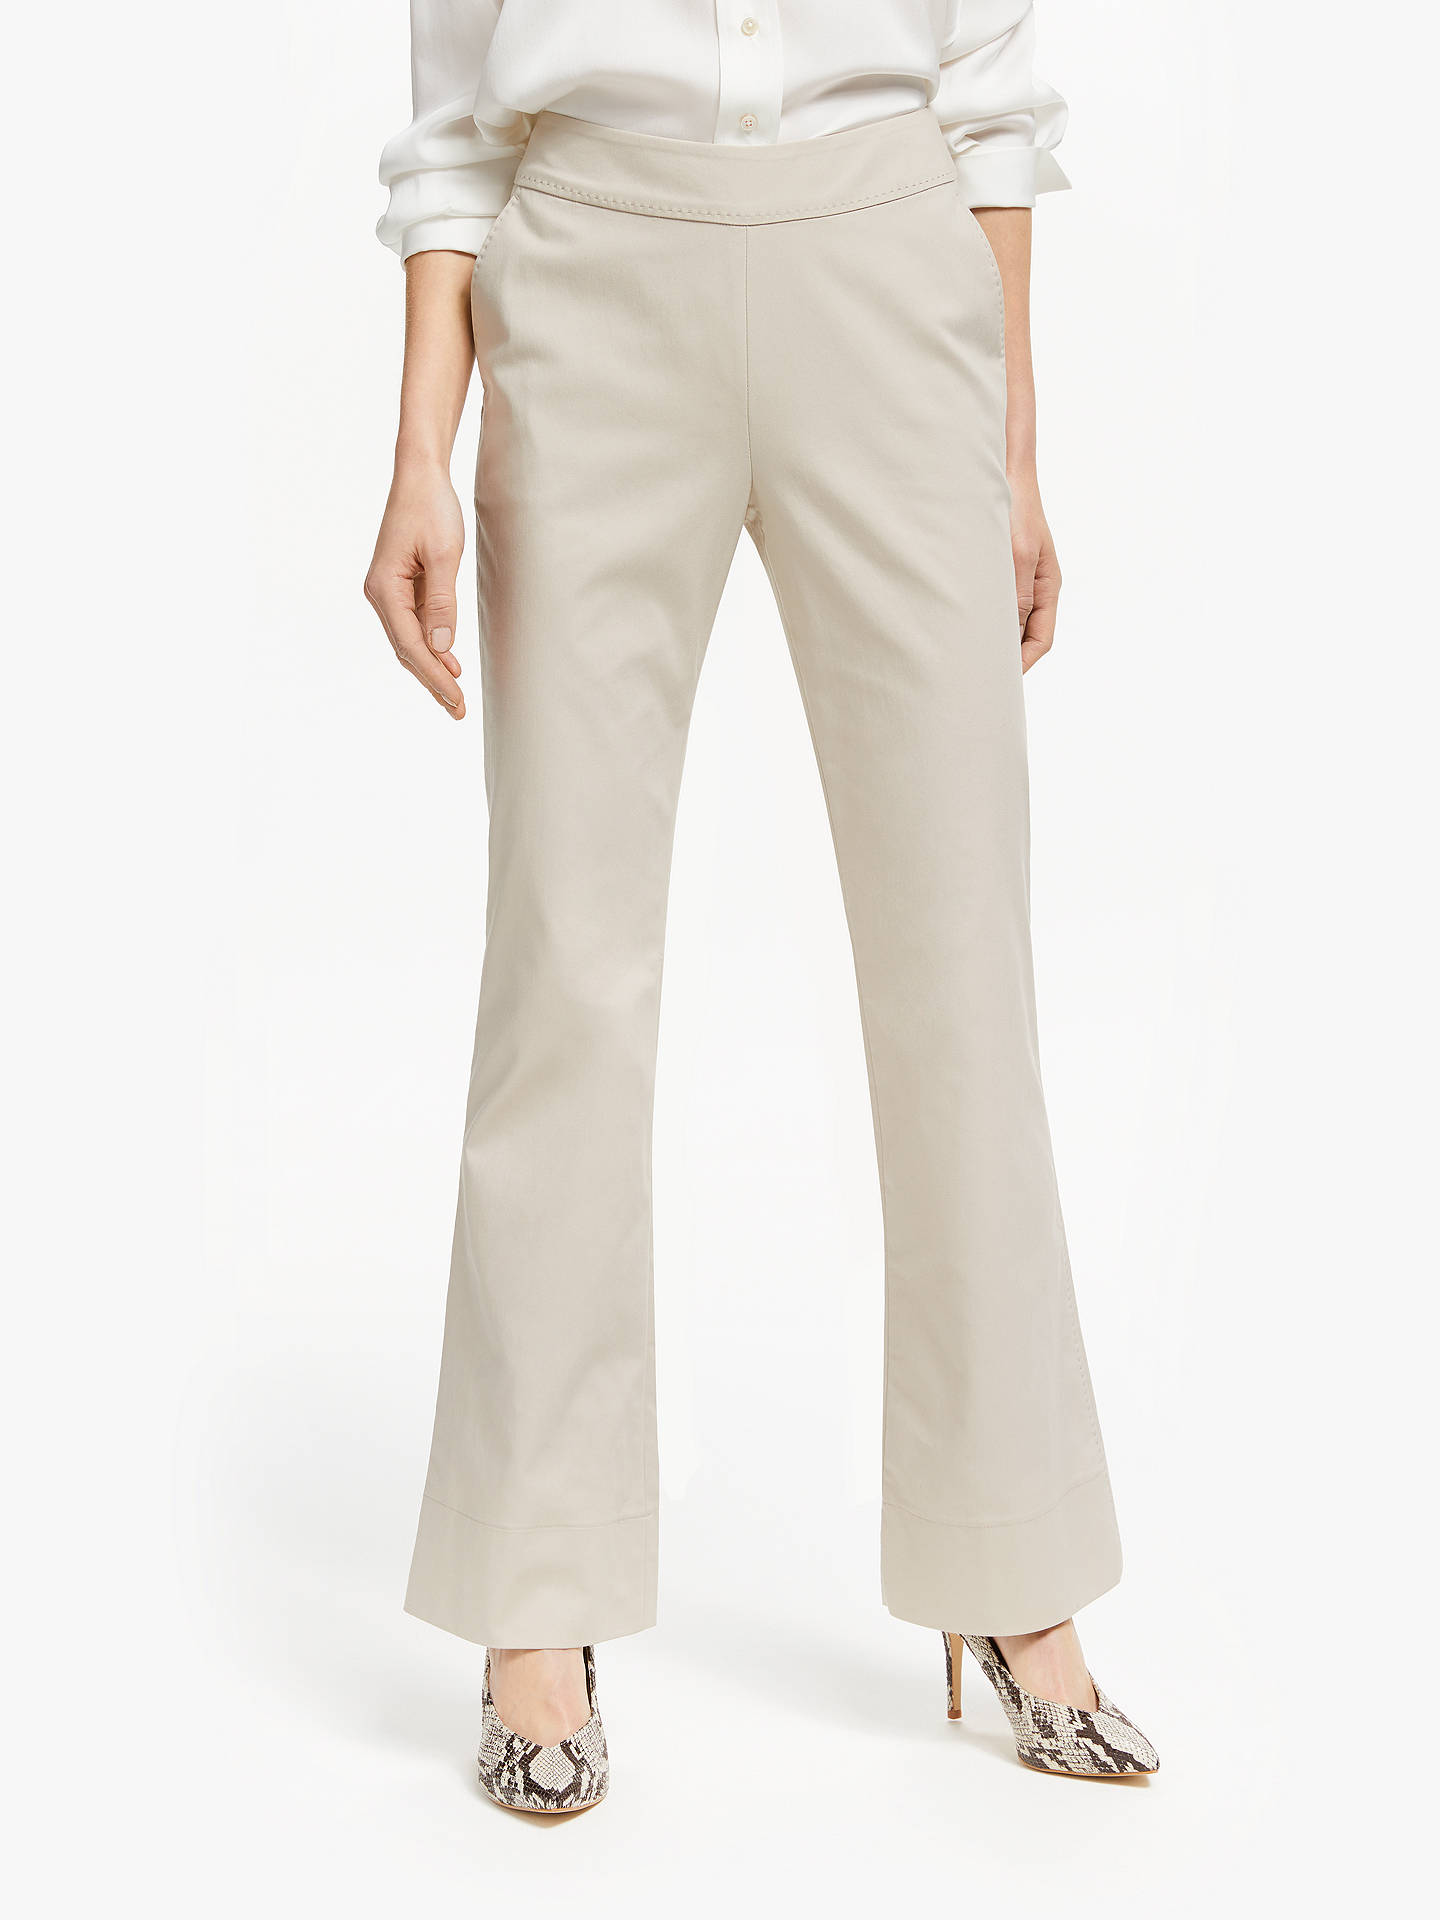 Buy Winser London Cotton Twill Flared Trousers, Stone, 10 Online at johnlewis.com